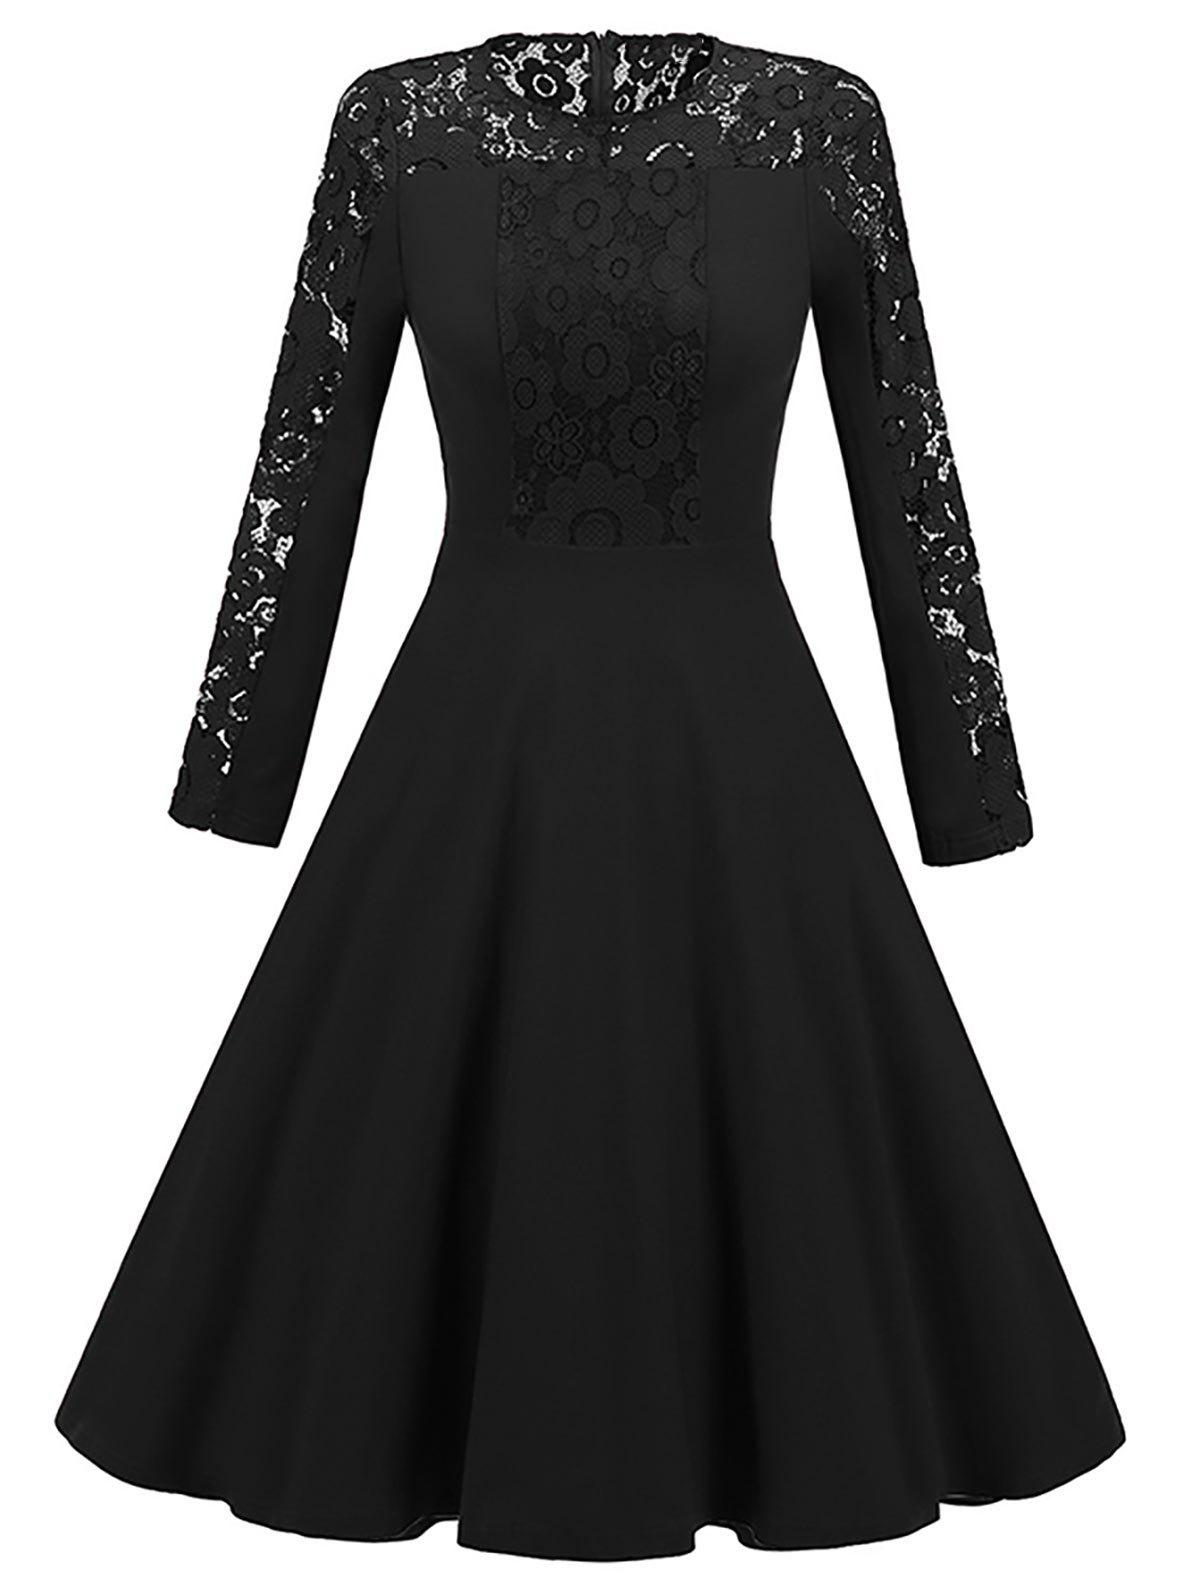 Long Sleeve Lace Insert Vintage Skater DressWOMEN<br><br>Size: 2XL; Color: BLACK; Style: Vintage; Material: Polyester; Silhouette: A-Line; Dresses Length: Knee-Length; Neckline: Round Collar; Sleeve Length: Long Sleeves; Pattern Type: Patchwork,Solid; With Belt: No; Season: Fall,Spring; Weight: 0.4200kg; Package Contents: 1 x Dress;